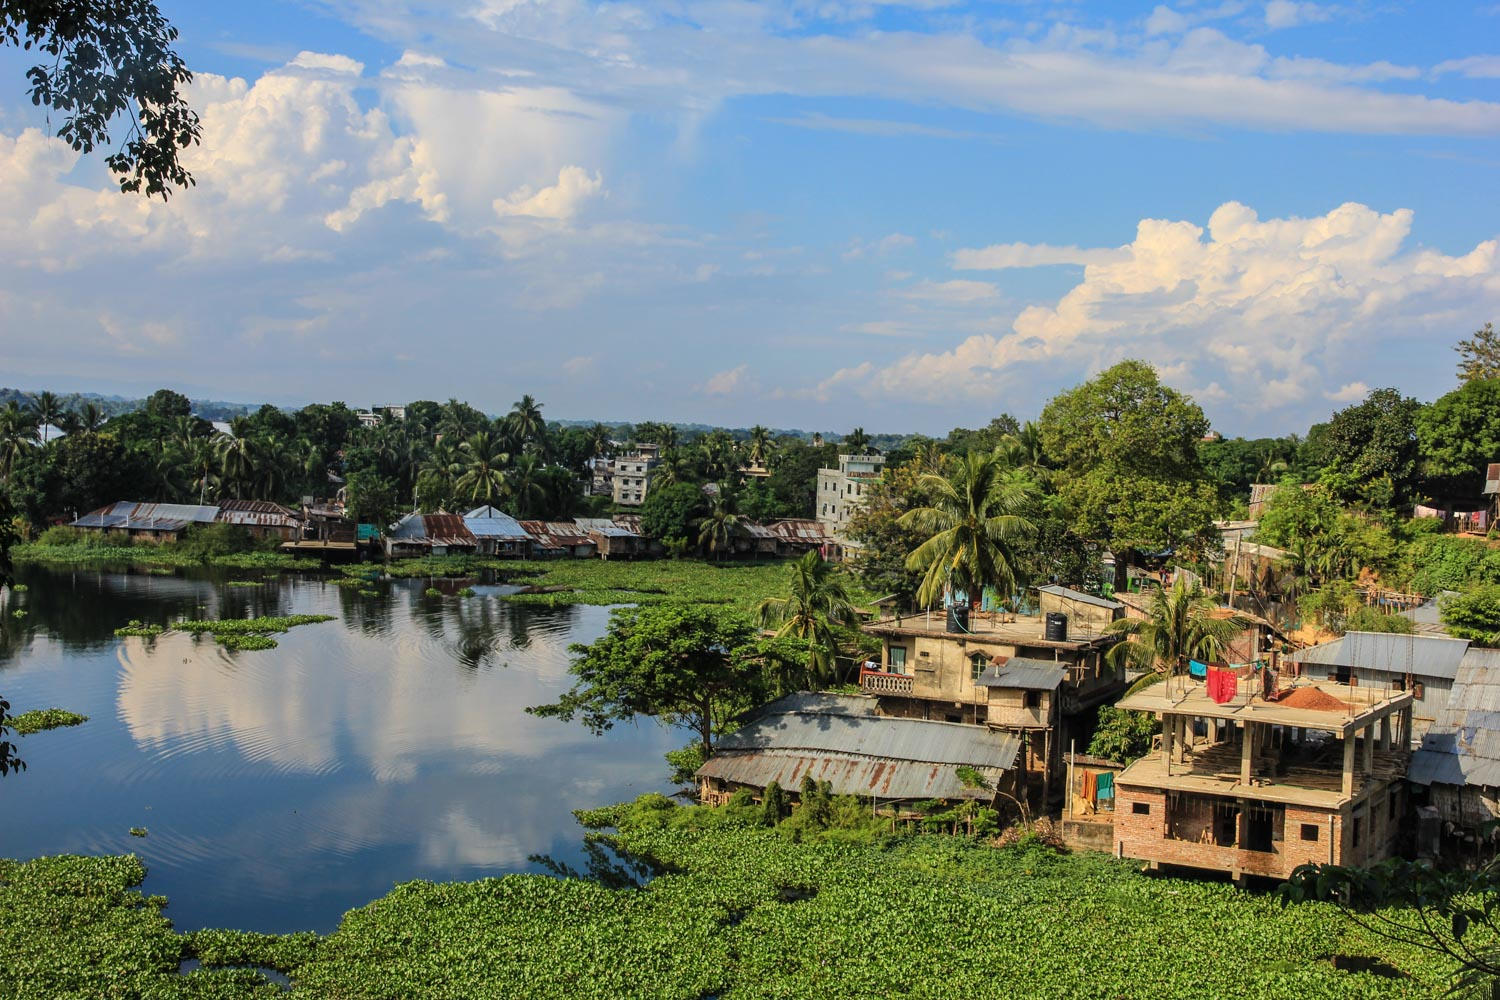 My view from my hotel room in Rangamati